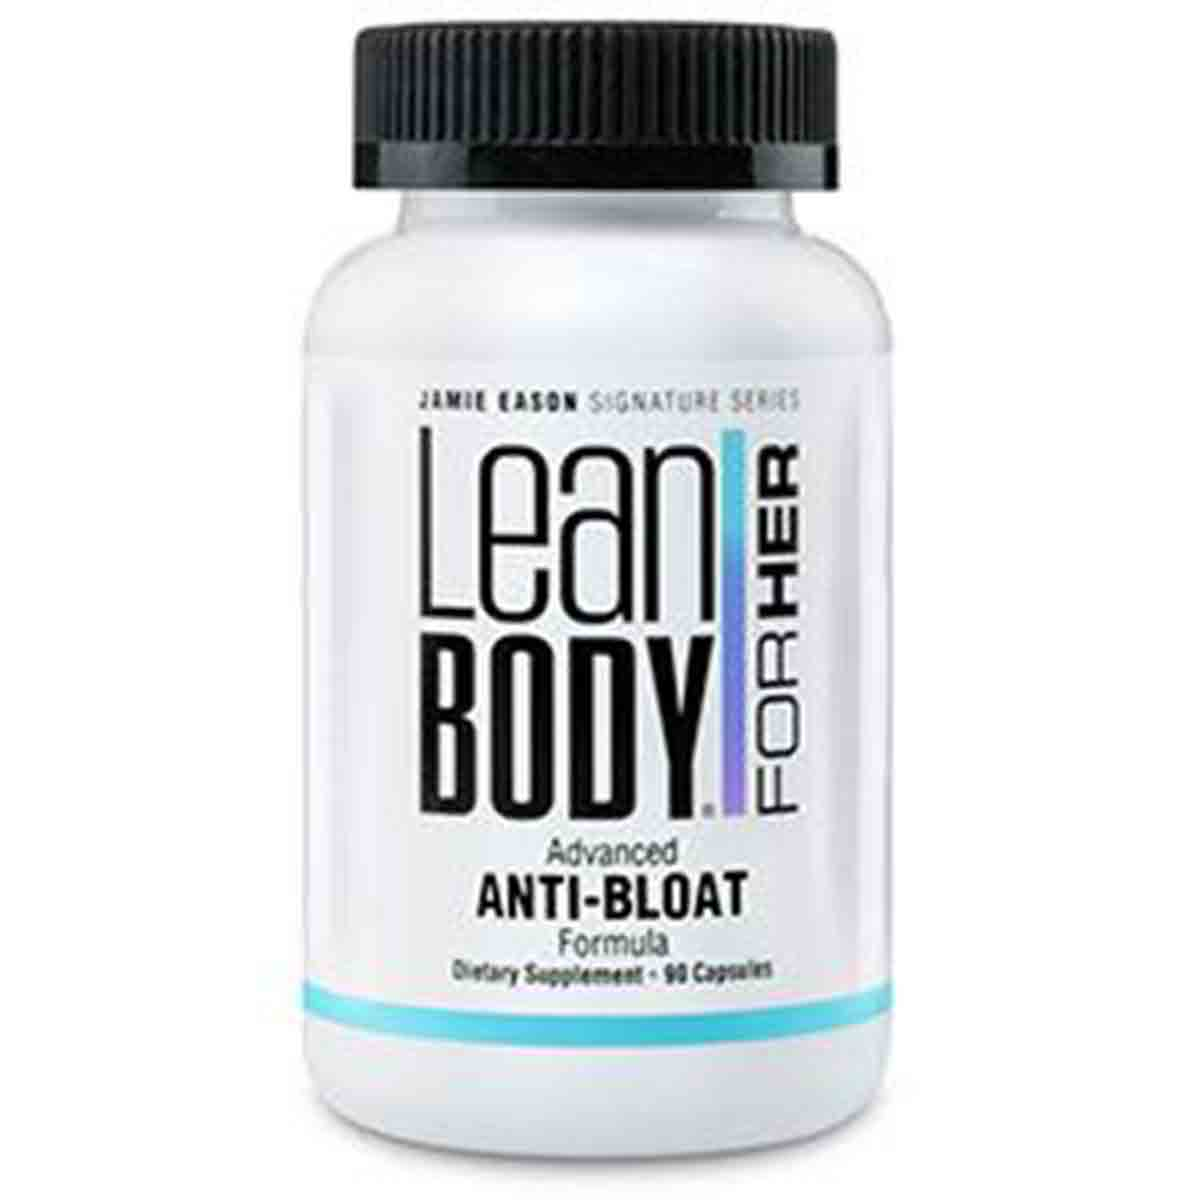 Lean Body For Her Advanced Anti-Bloat Formula